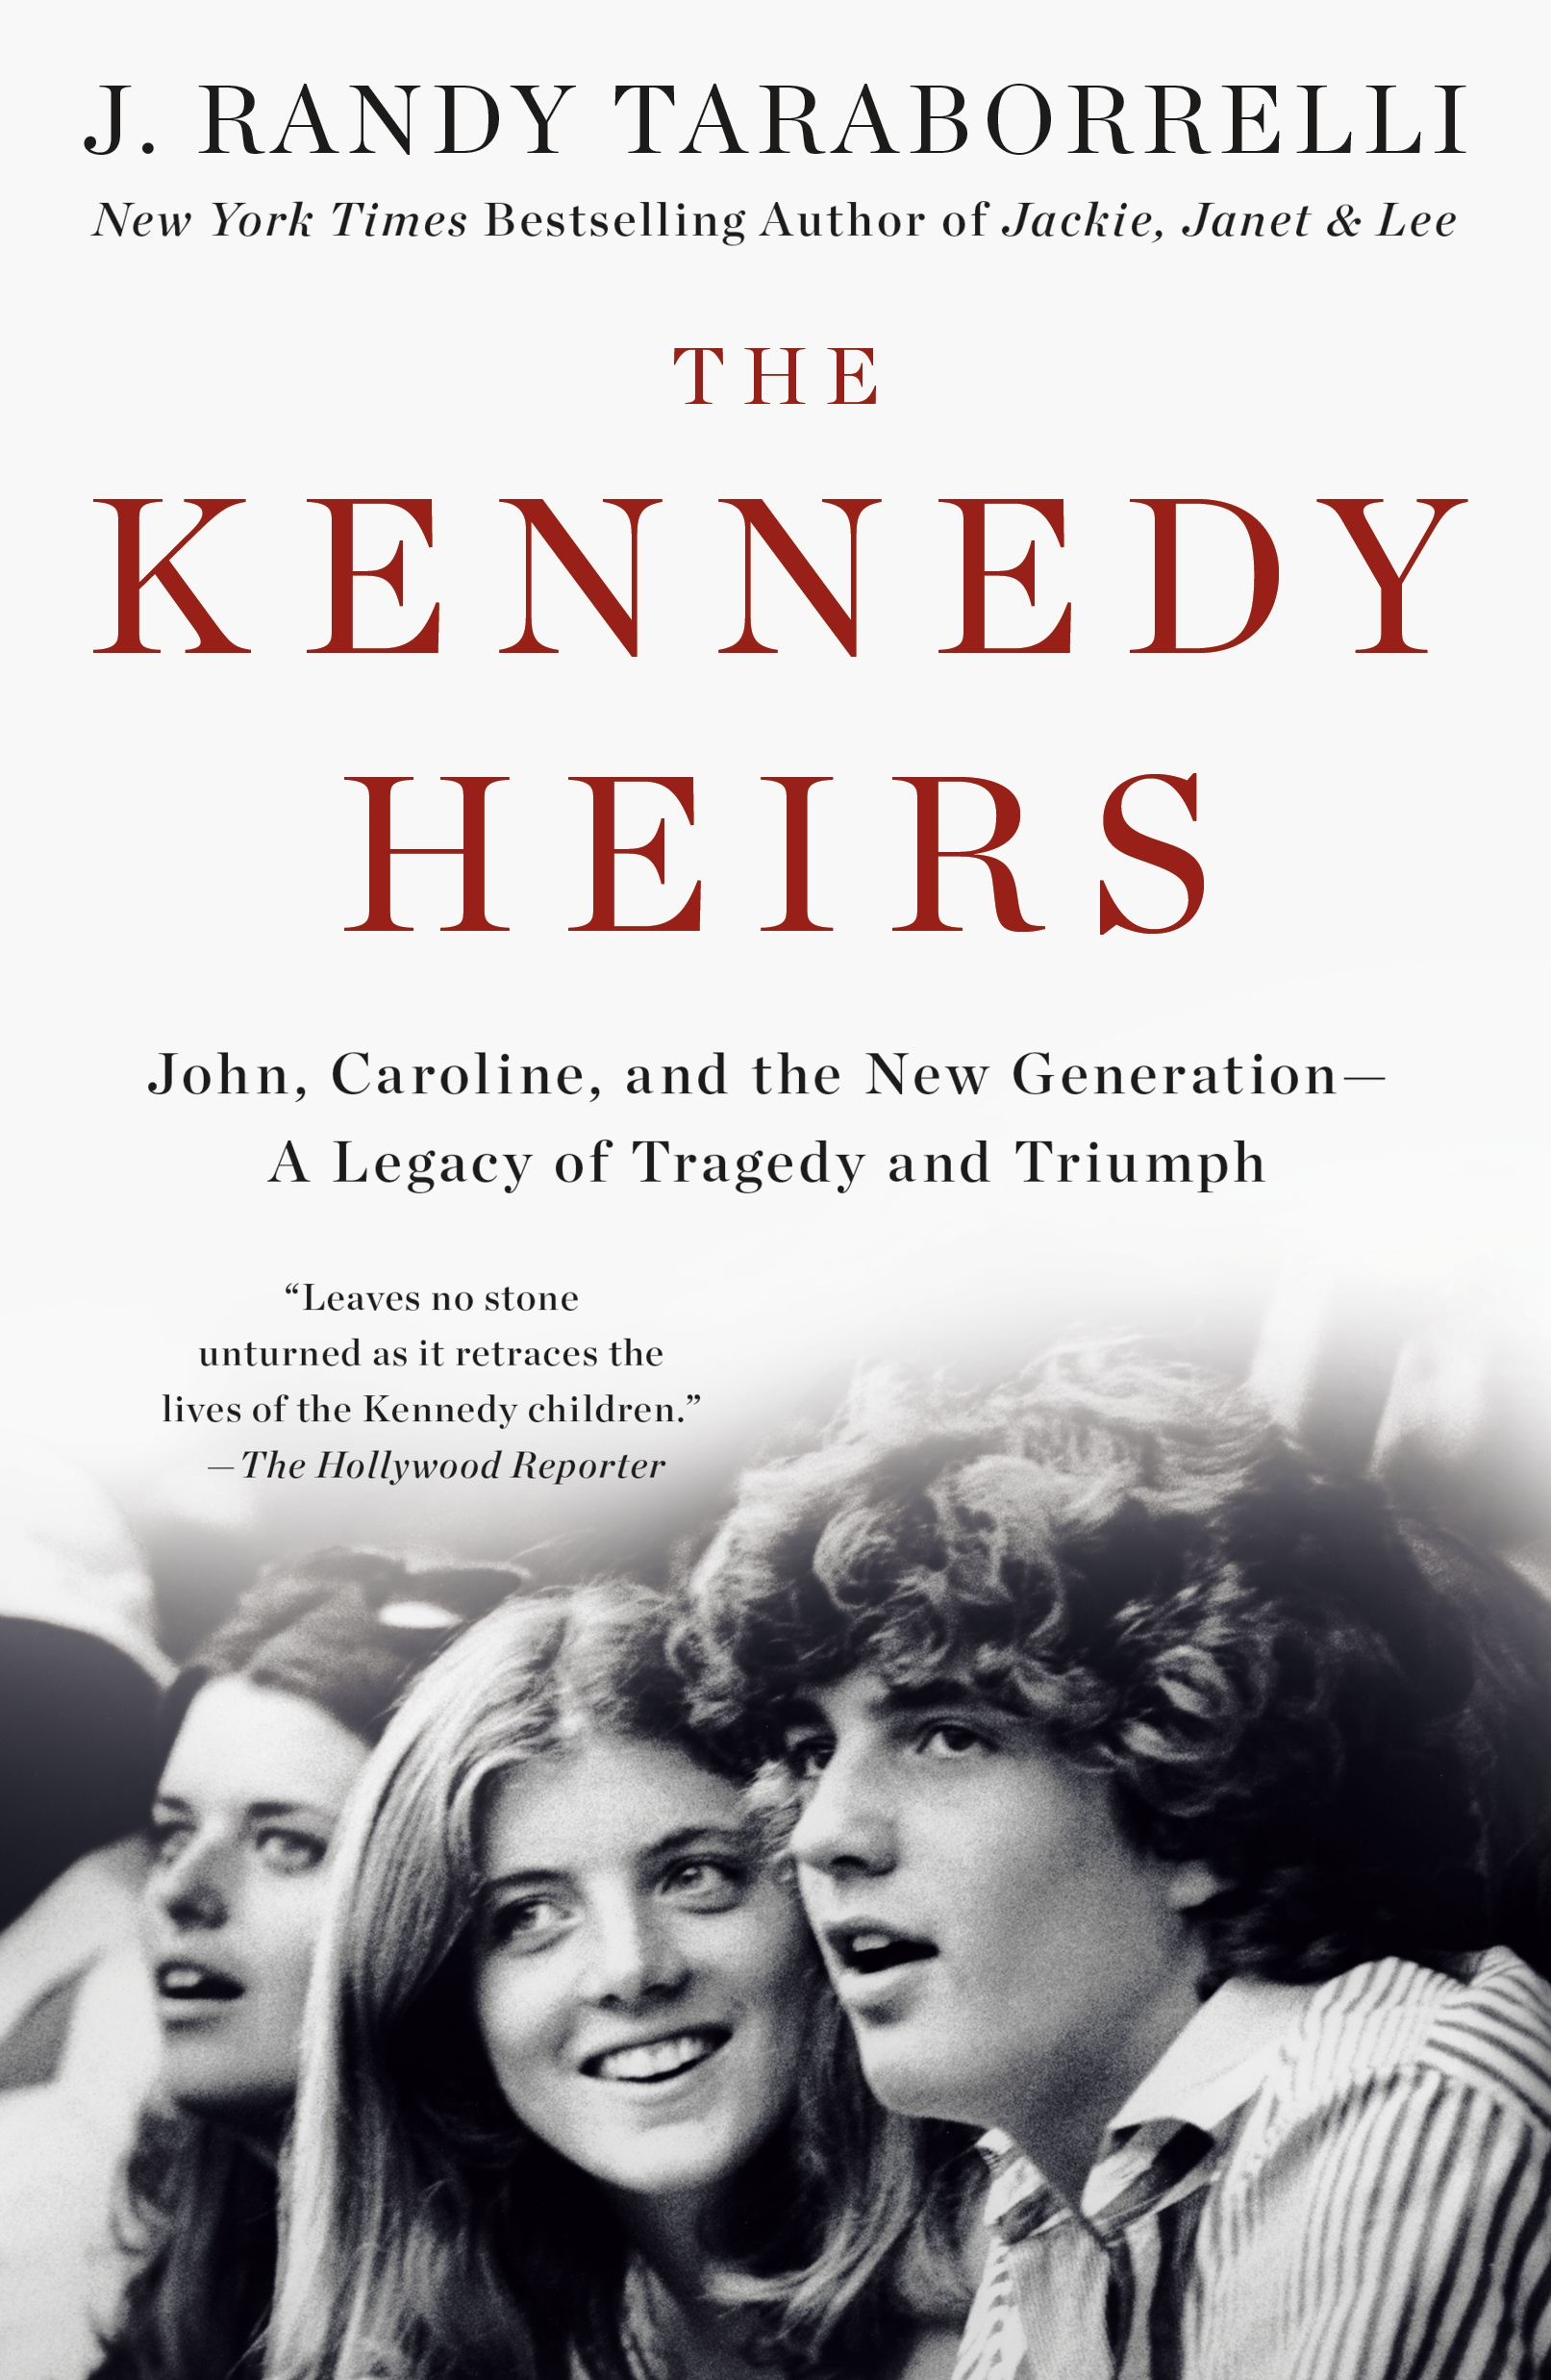 The Kennedy Heirs John, Caroline, and the New Generation - A Legacy of Triumph and Tragedy